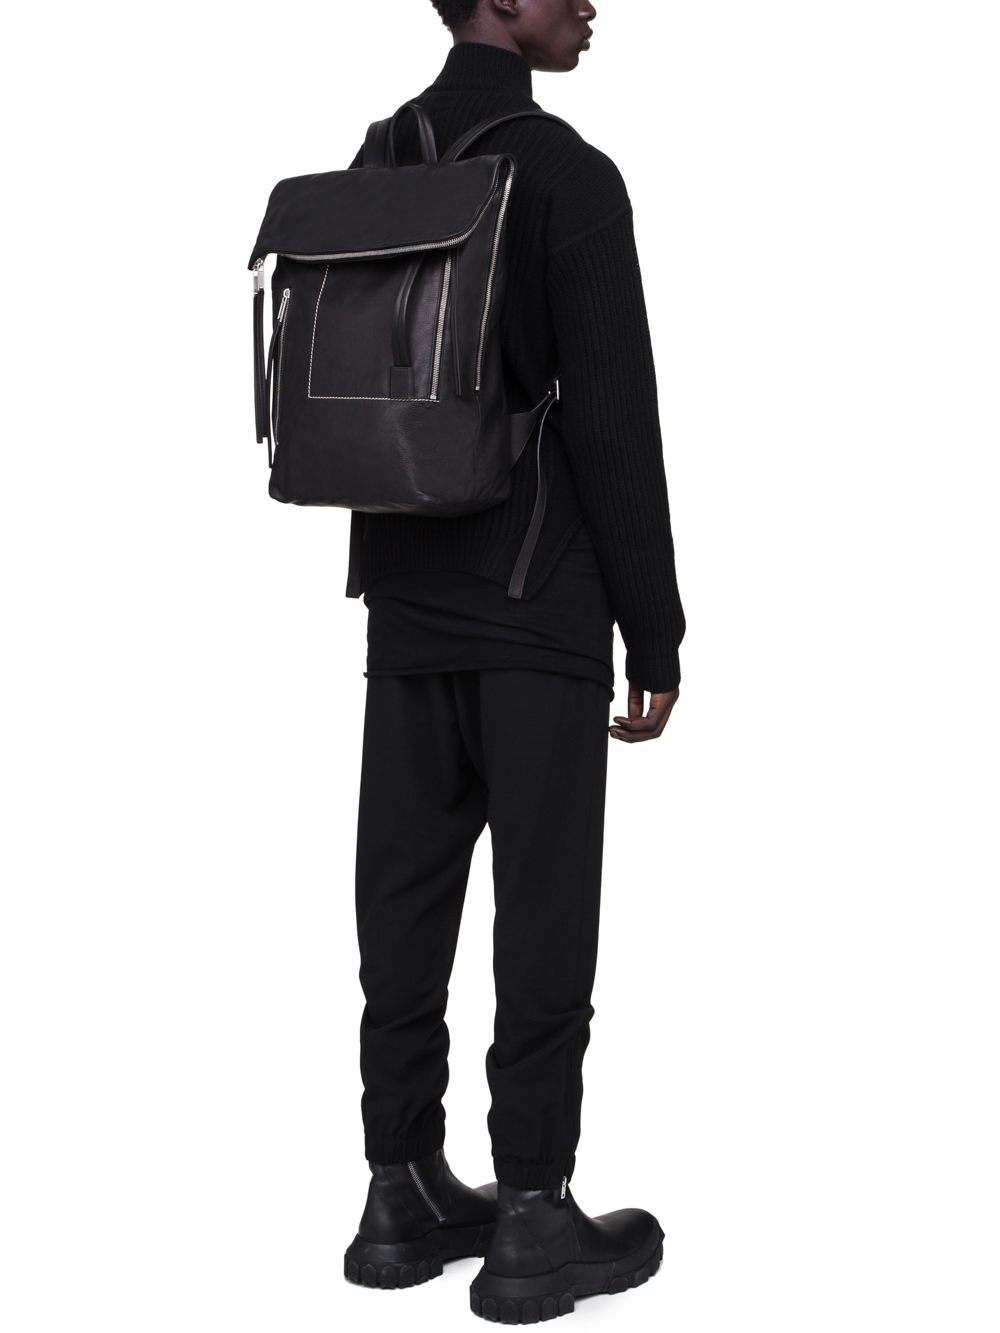 RICK OWENS FW18 SISYPHUS DUFFLE BACKPACK IN BLACK CALF LEATHER